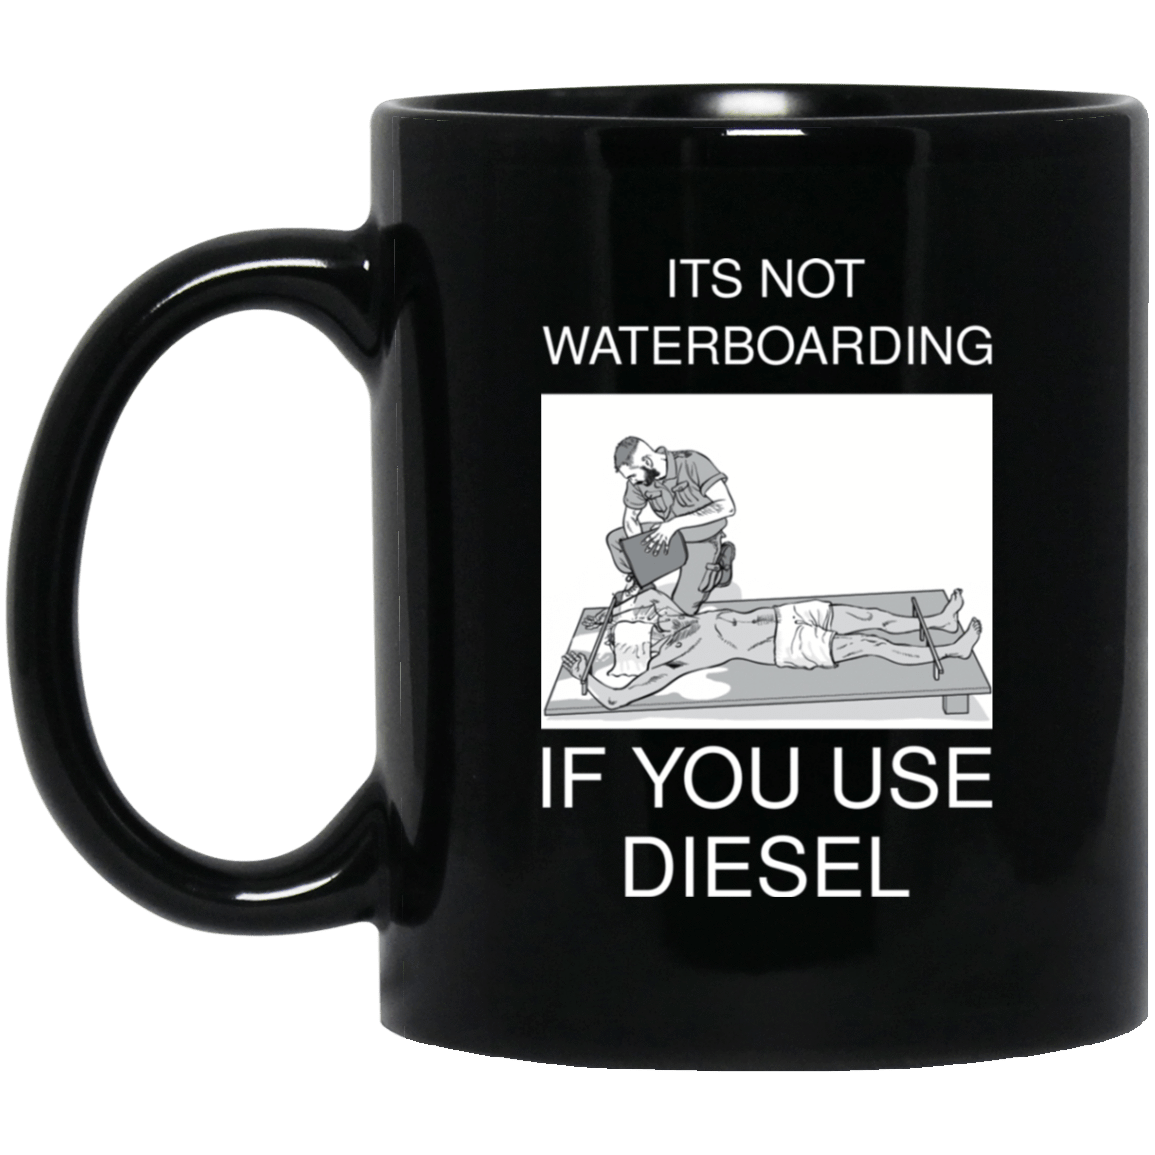 It's Not Waterboarding If You Use Diesel Mug 1065-10181-73423004-49307 - Tee Ript